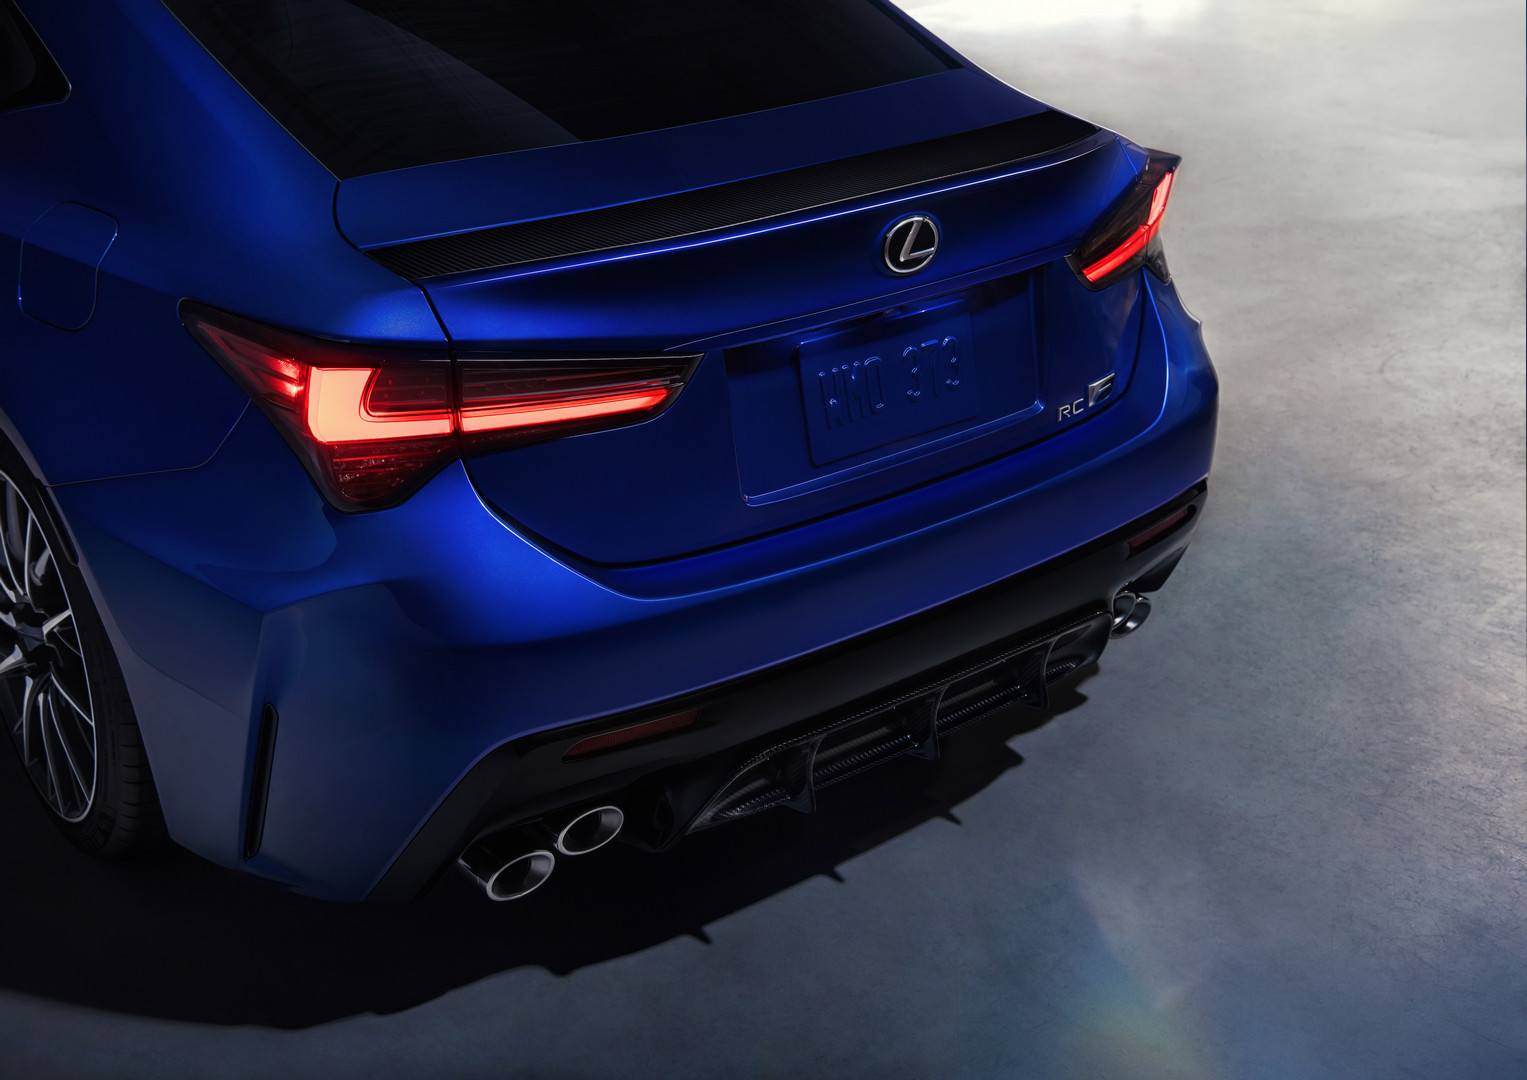 2020 Lexus RC F Rear Lights